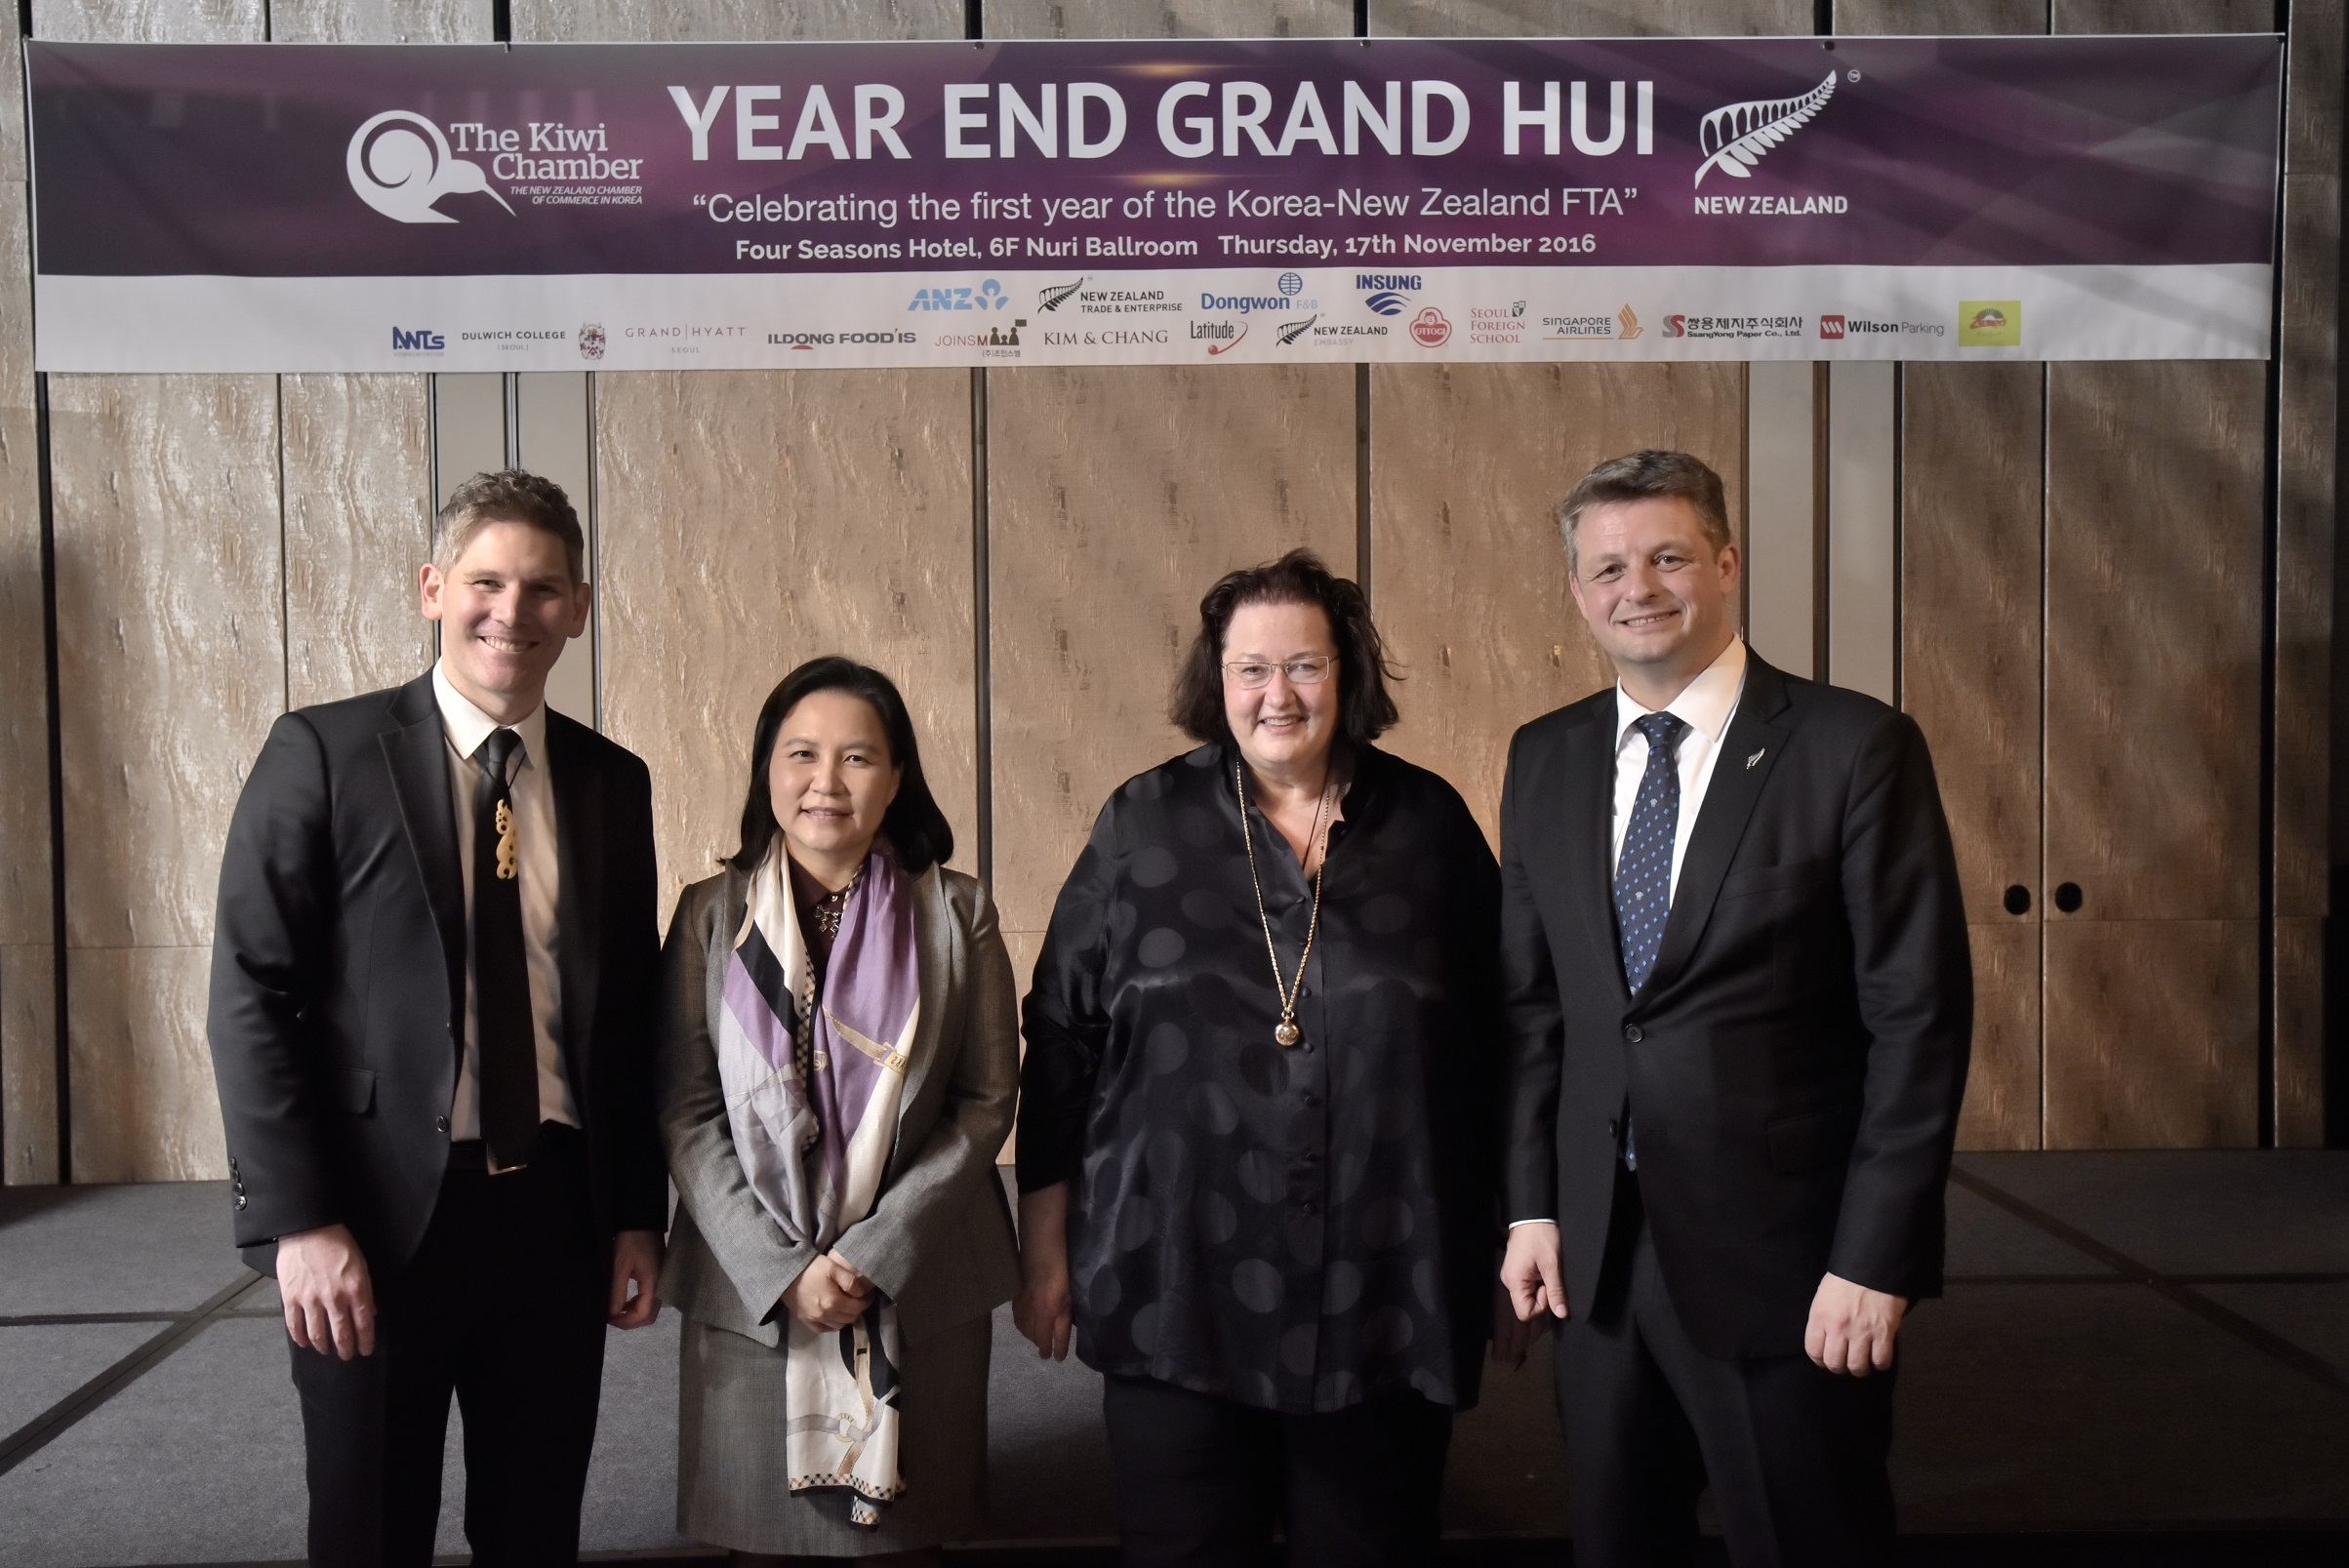 From (L): John Riley, deputy head of mission at the New Zealand Embassy; Yoo Myung-hee, MOTIE director general for FTA negotiations; Clare Fearnley, New Zealand ambassador to Korea; and Tony Garrett, chairman of the Kiwi Chamber pose for a photo.